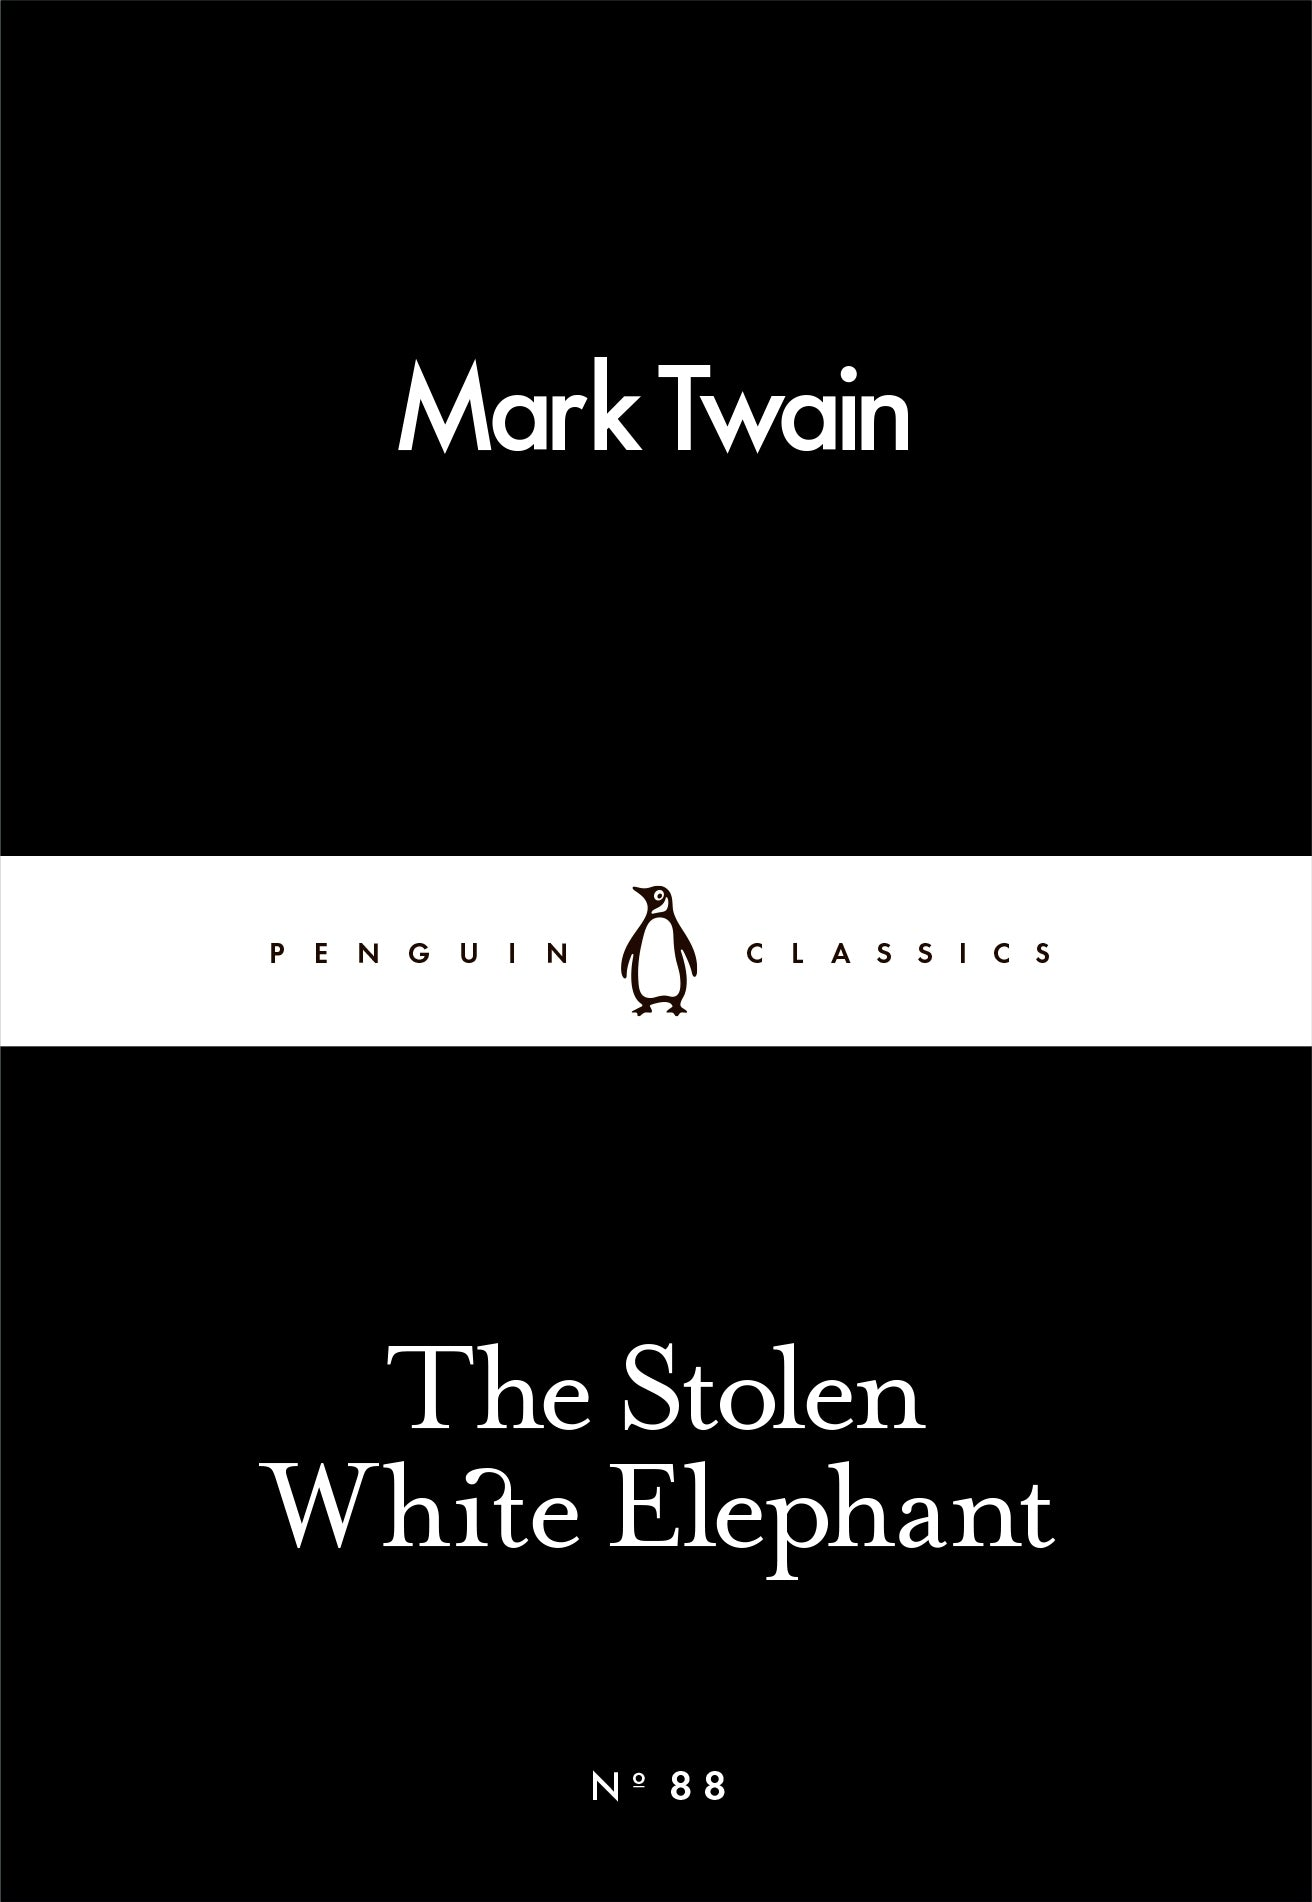 The Stolen White Elephant - Mark Twain